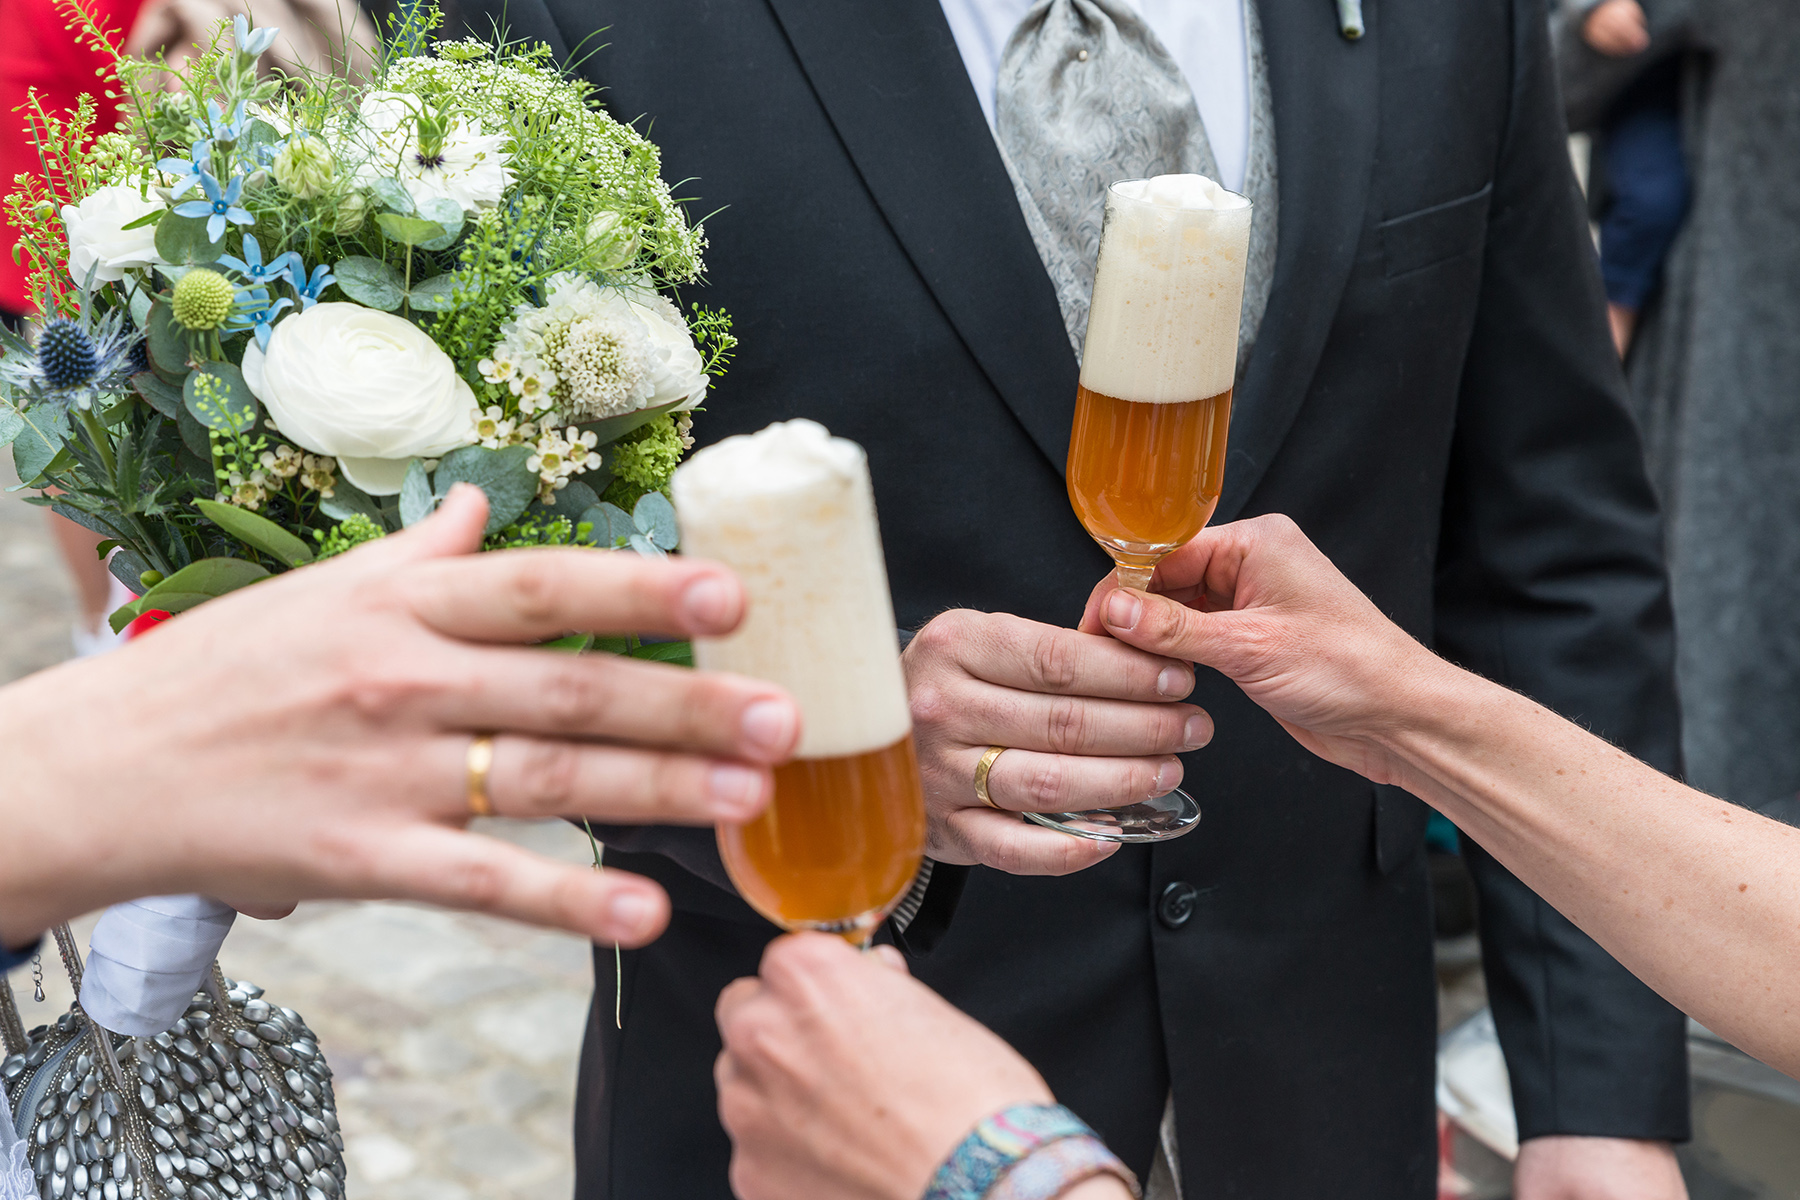 A wedded couple in Germany toasting with a beer